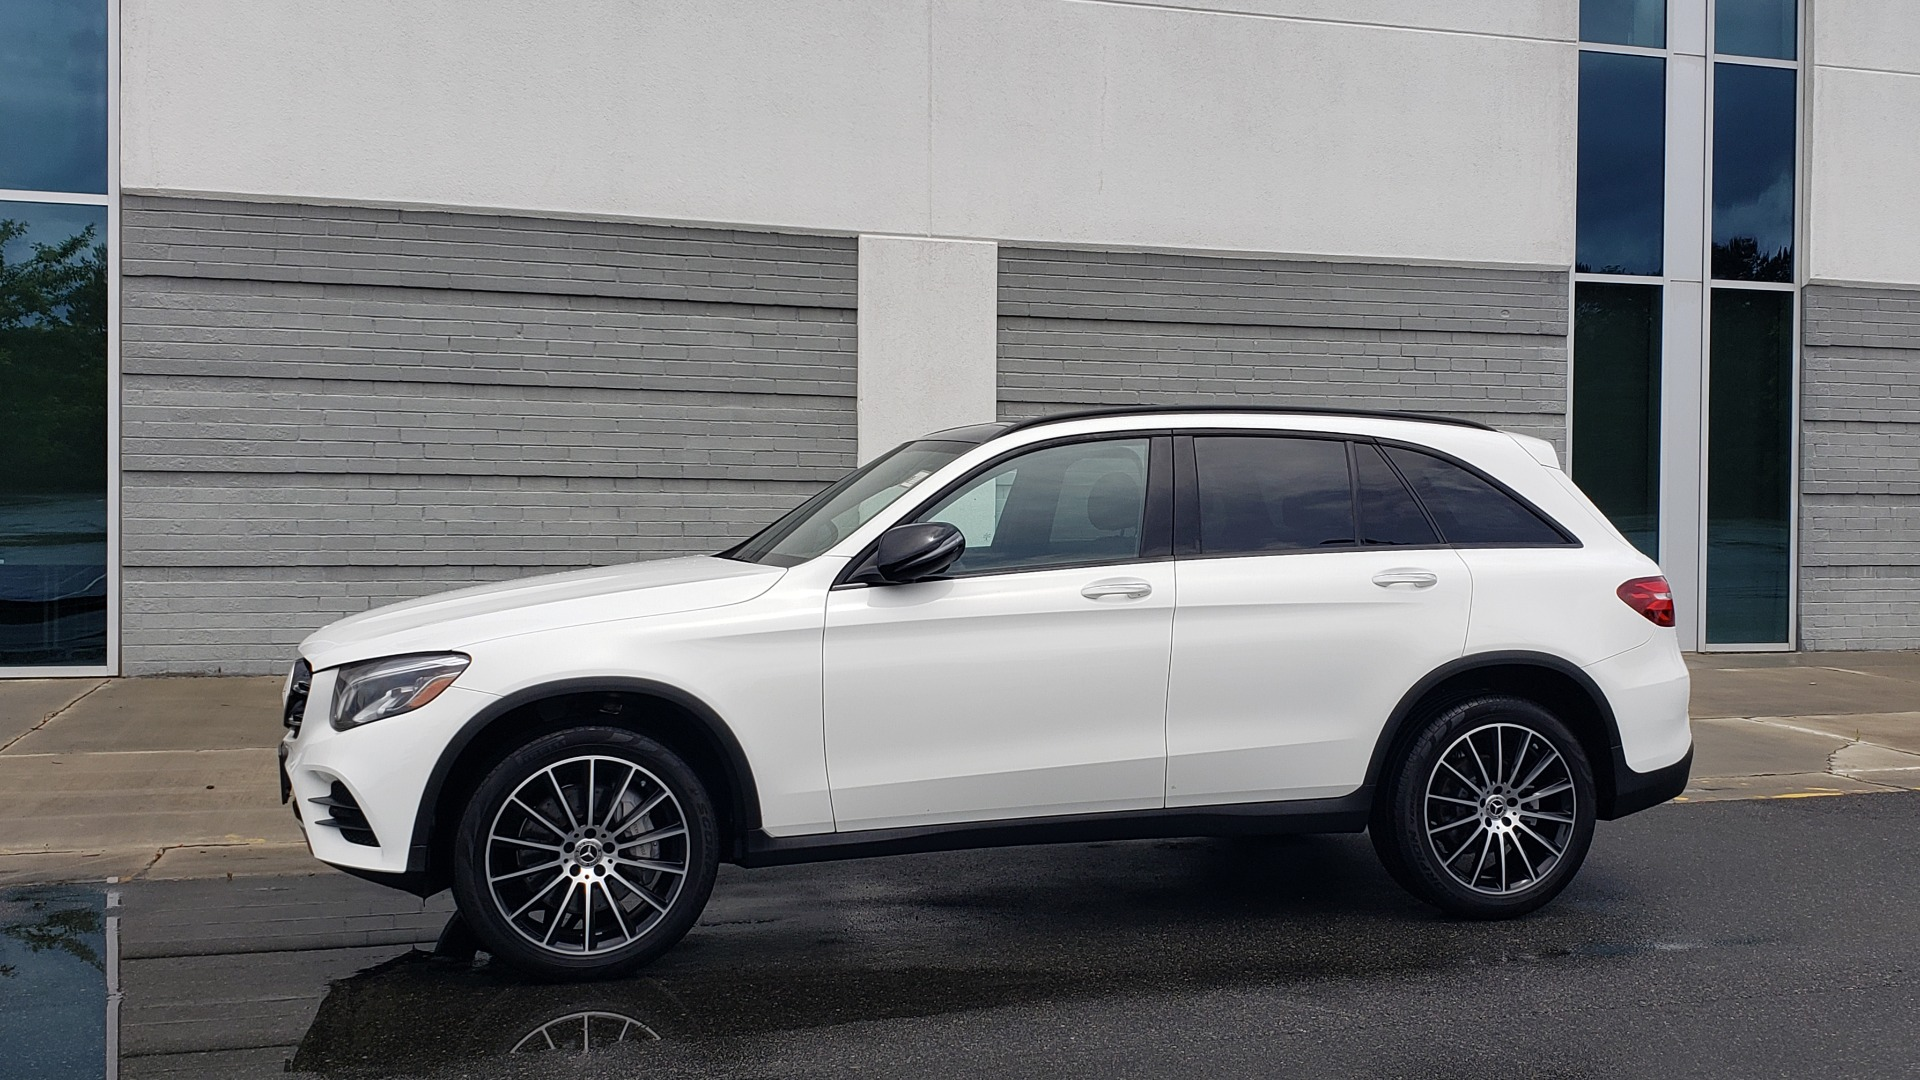 Used 2018 Mercedes-Benz GLC 300 4MATIC PREMIUM / NAV / BURMESTER SND / PANO-ROOF / REARVIEW for sale $35,495 at Formula Imports in Charlotte NC 28227 4